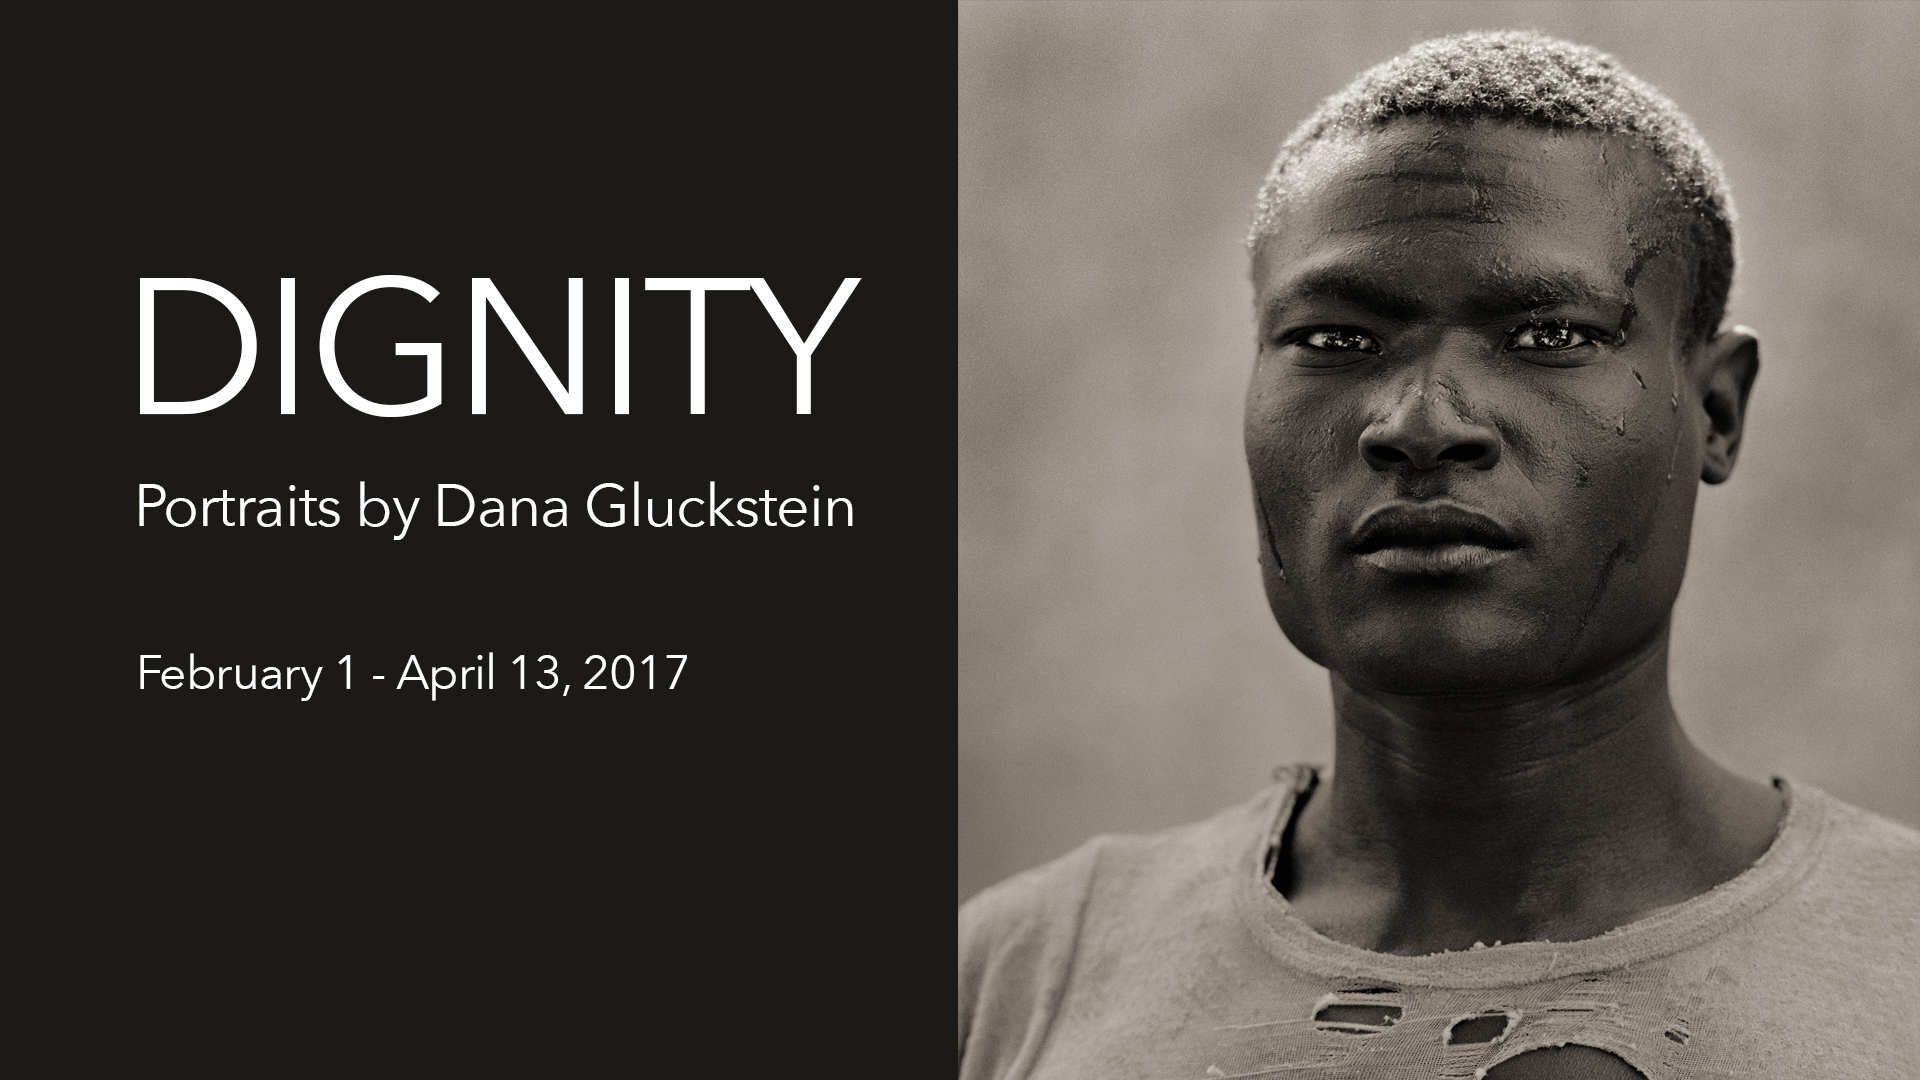 DIGNITY (April 13 end date)